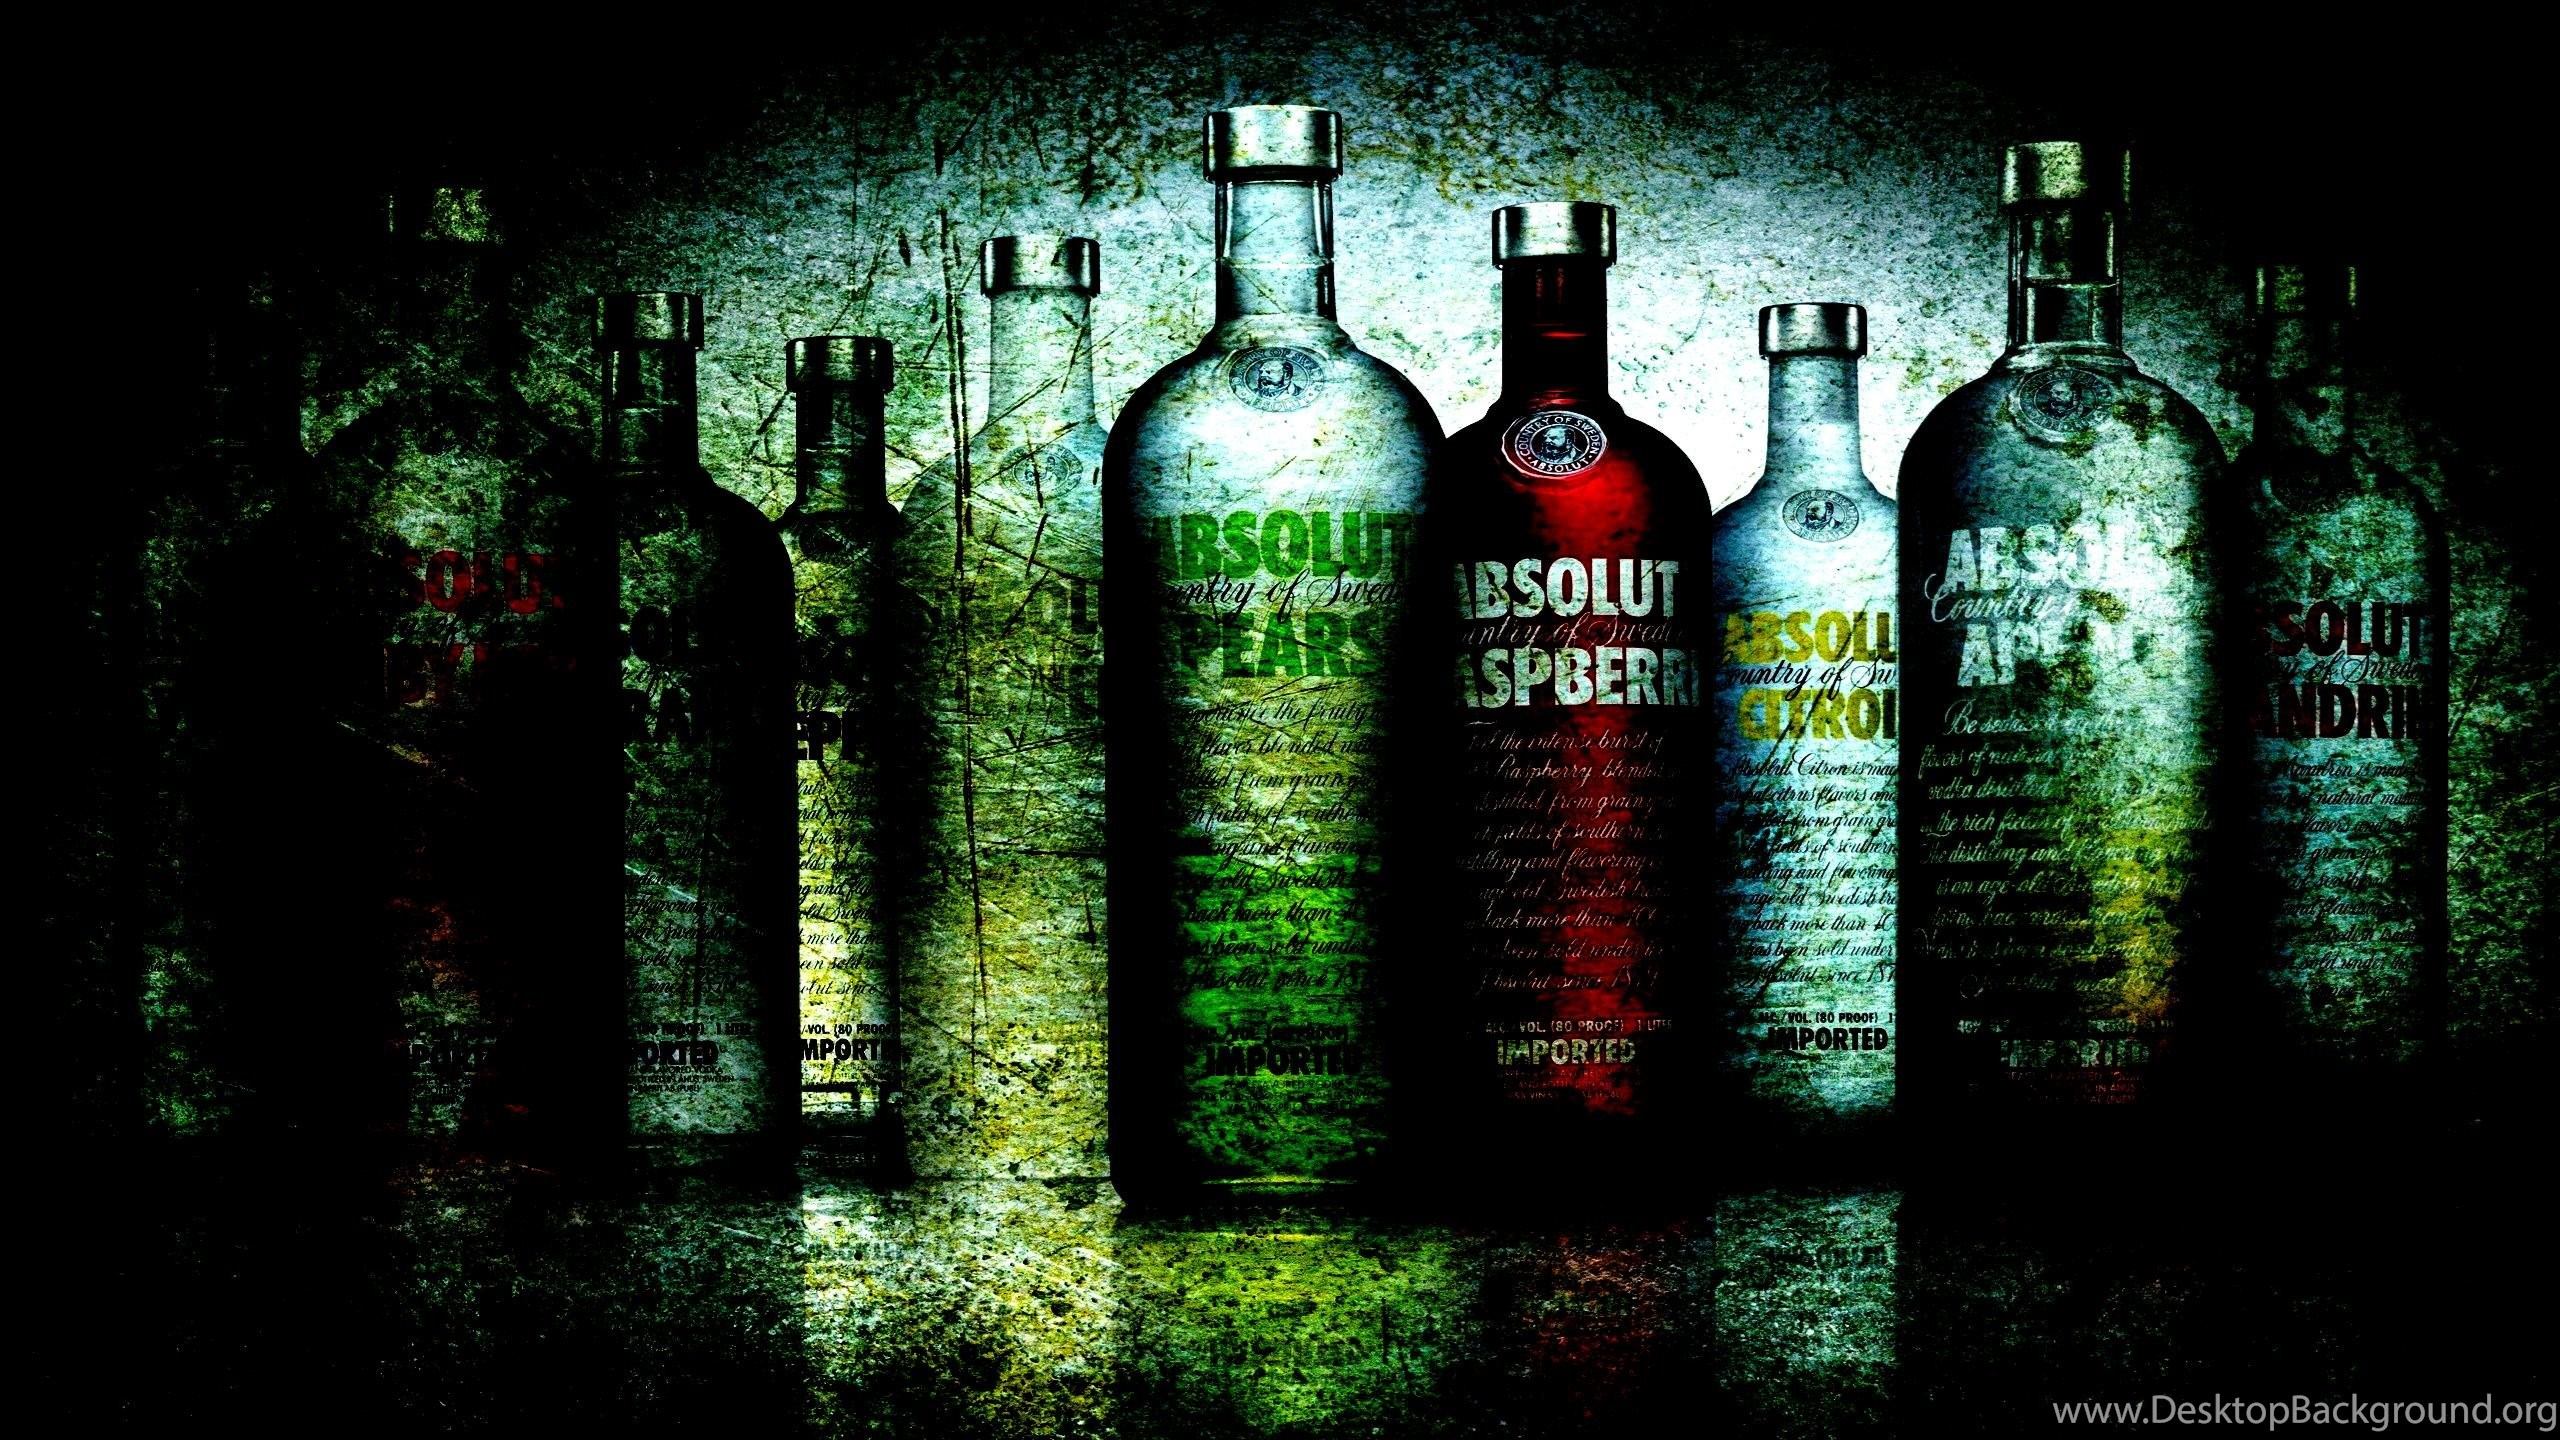 Vodka Absolut Alcohol Bottles Picture Hd Wallpapers